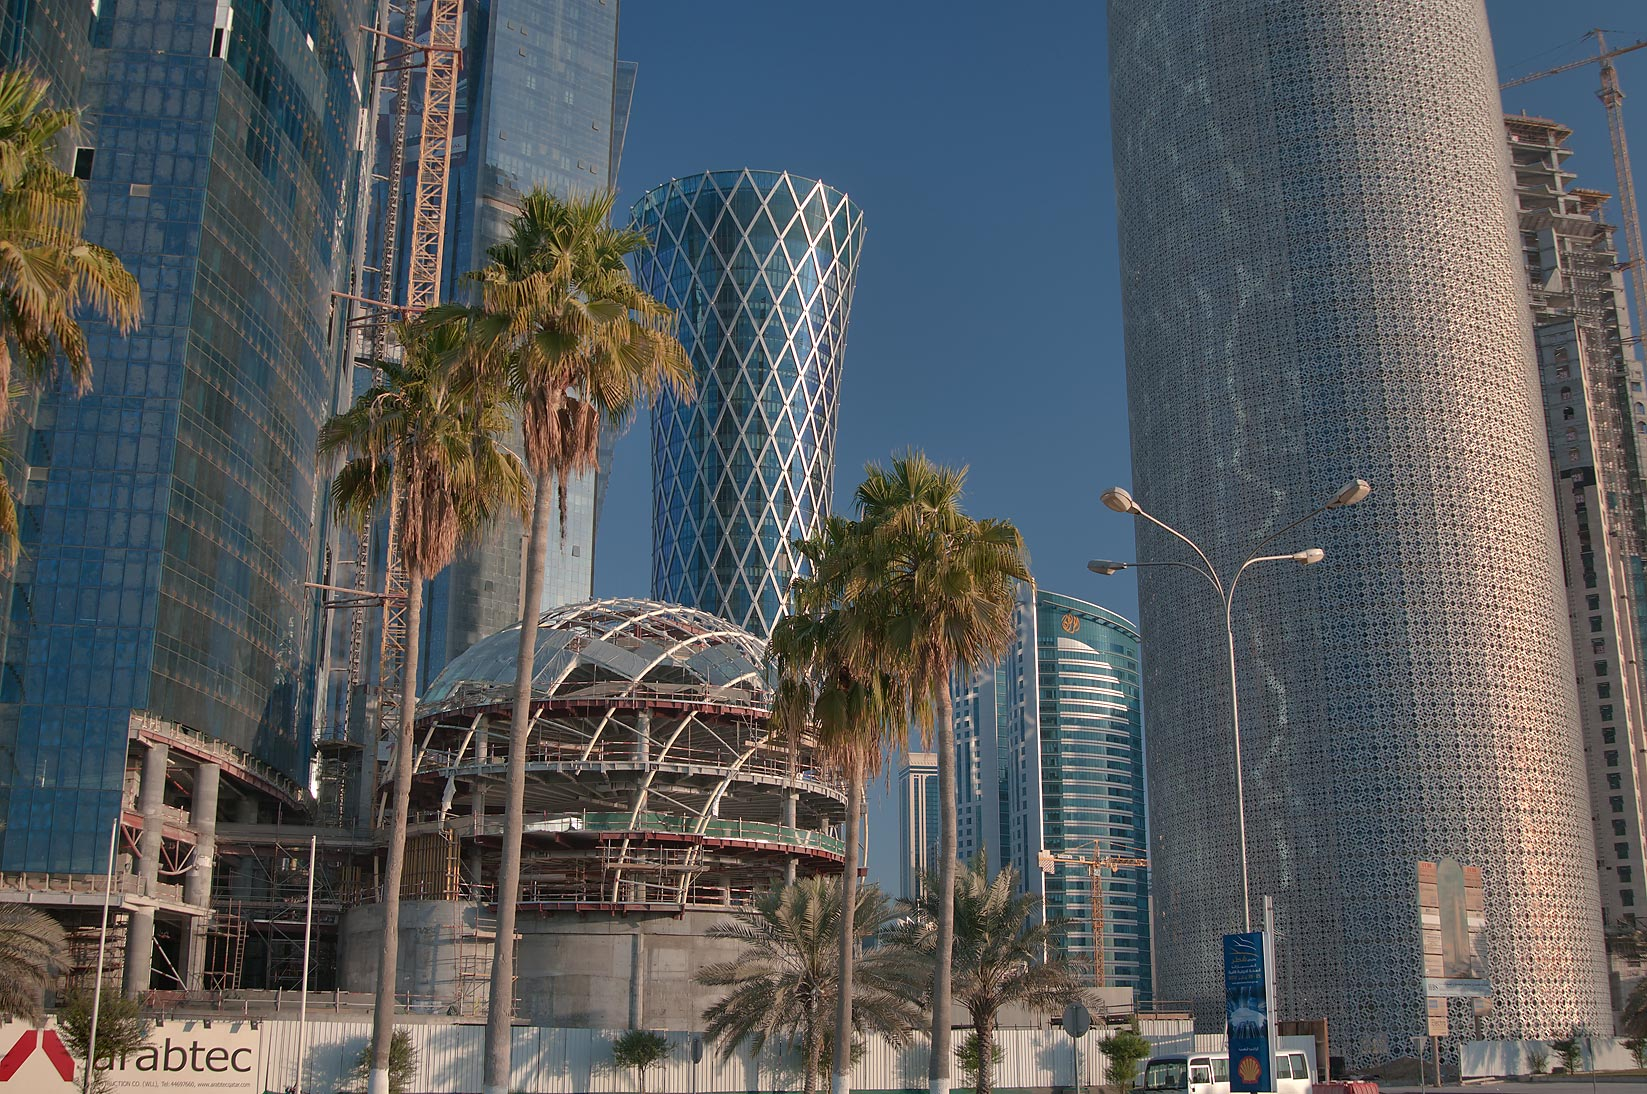 Globular structure near Burj Qatar Tower, view from Corniche. Doha, Qatar